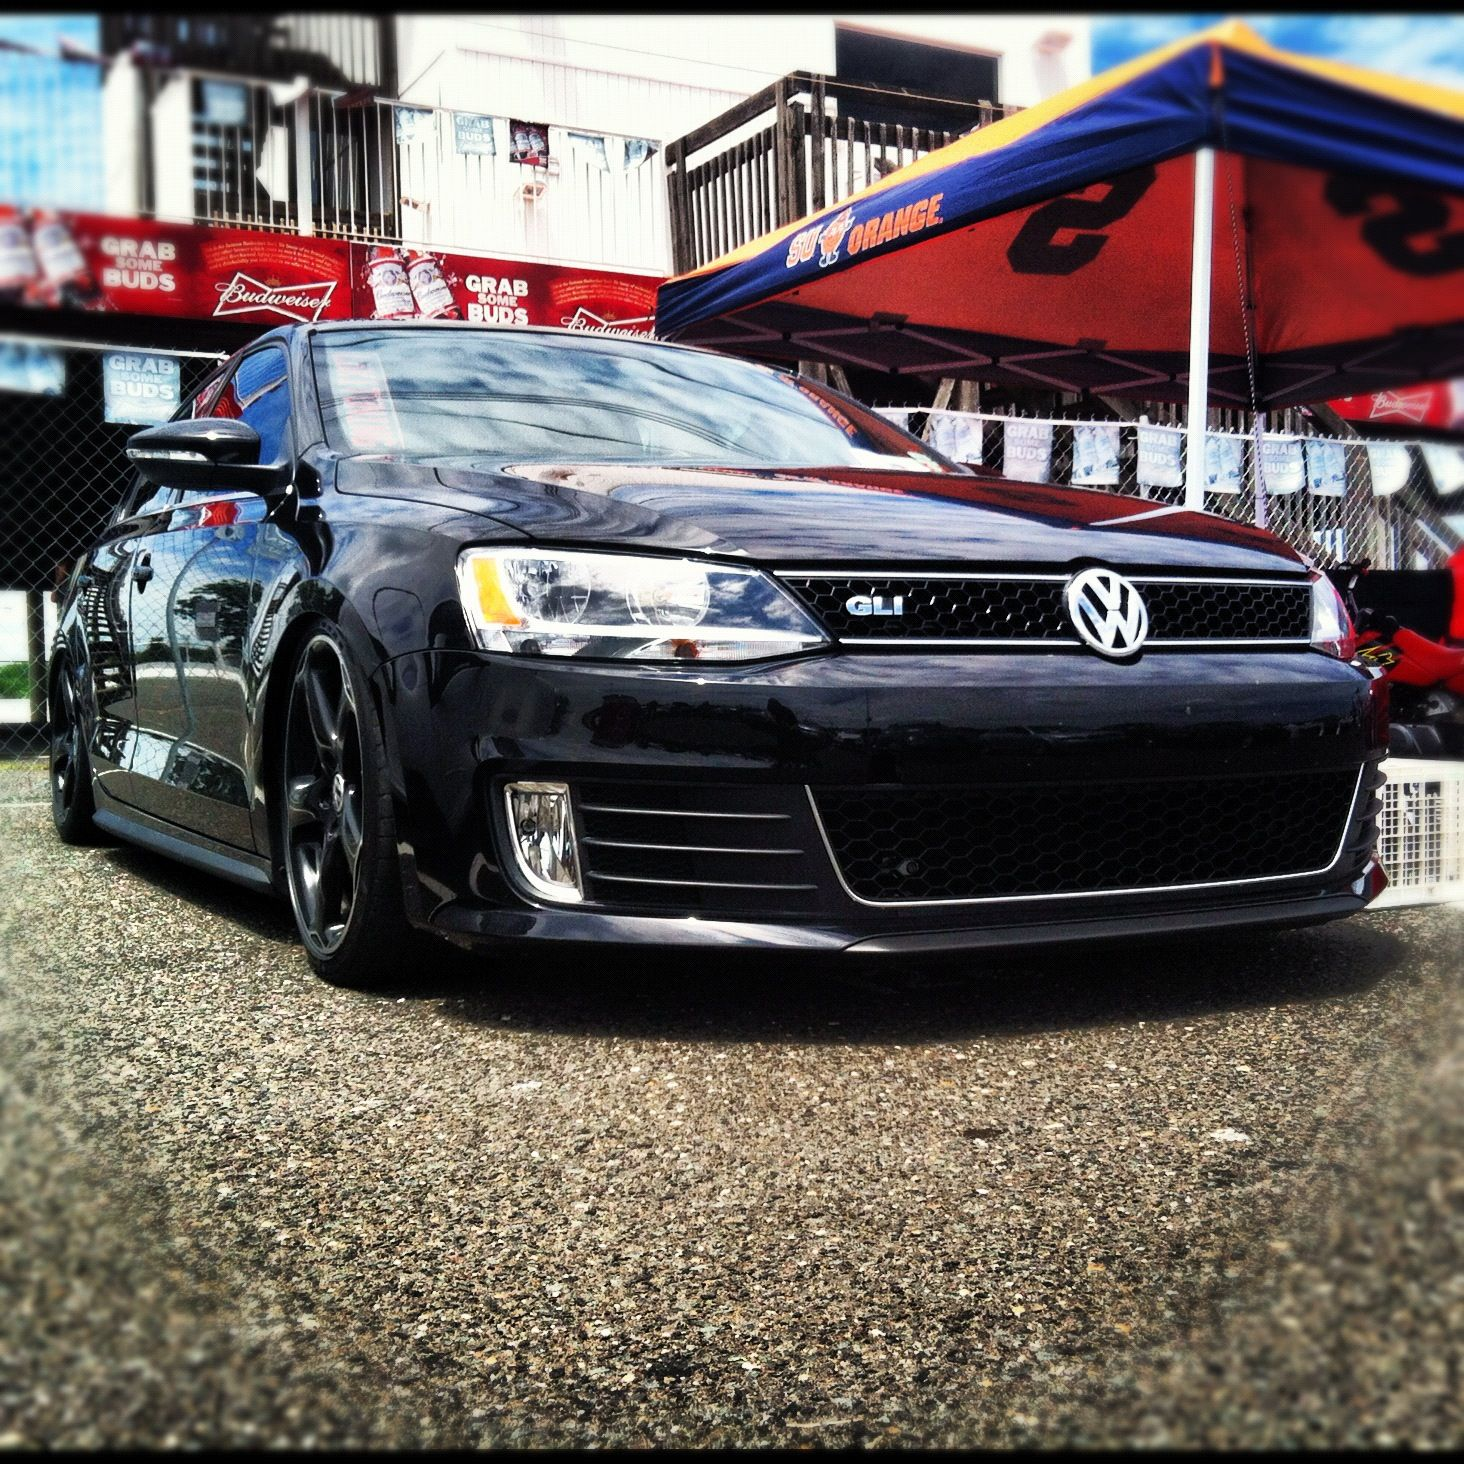 VW GLI At 2012 #Waterfest